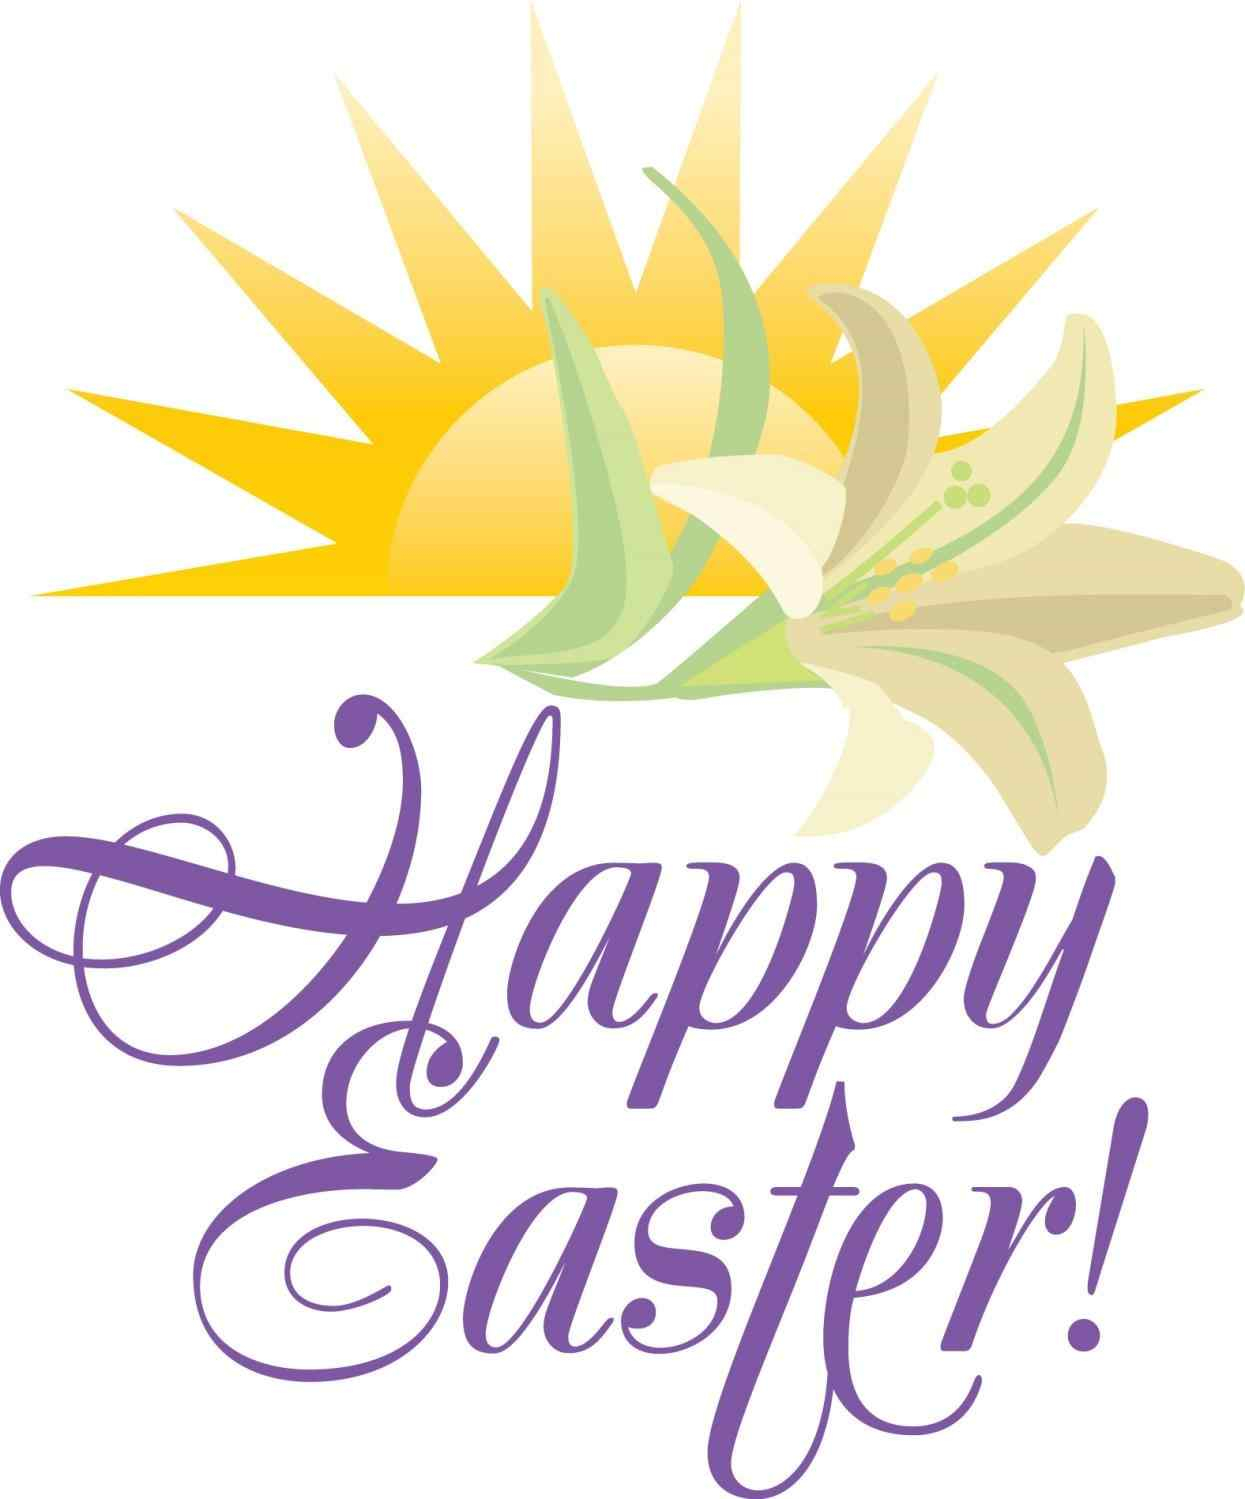 Free Clipart Easter Religious (96+ images in Collection) Page 1.